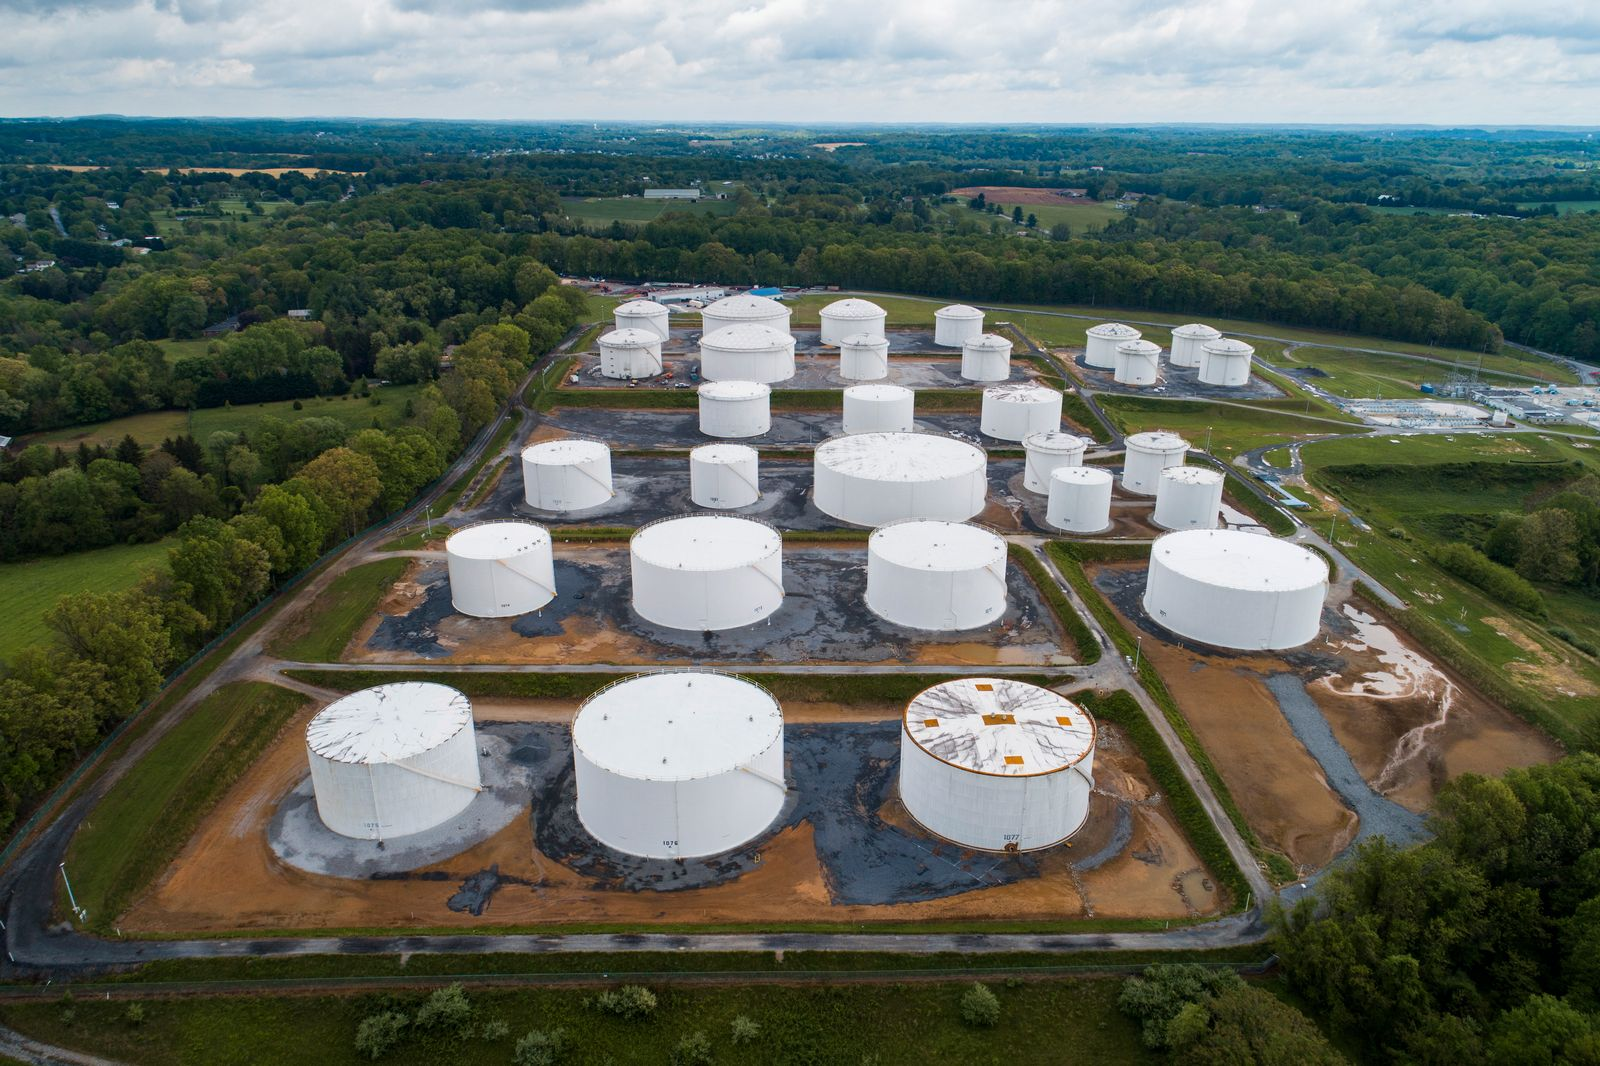 Cyberattack forces shutdown of Colonial Pipeline in US